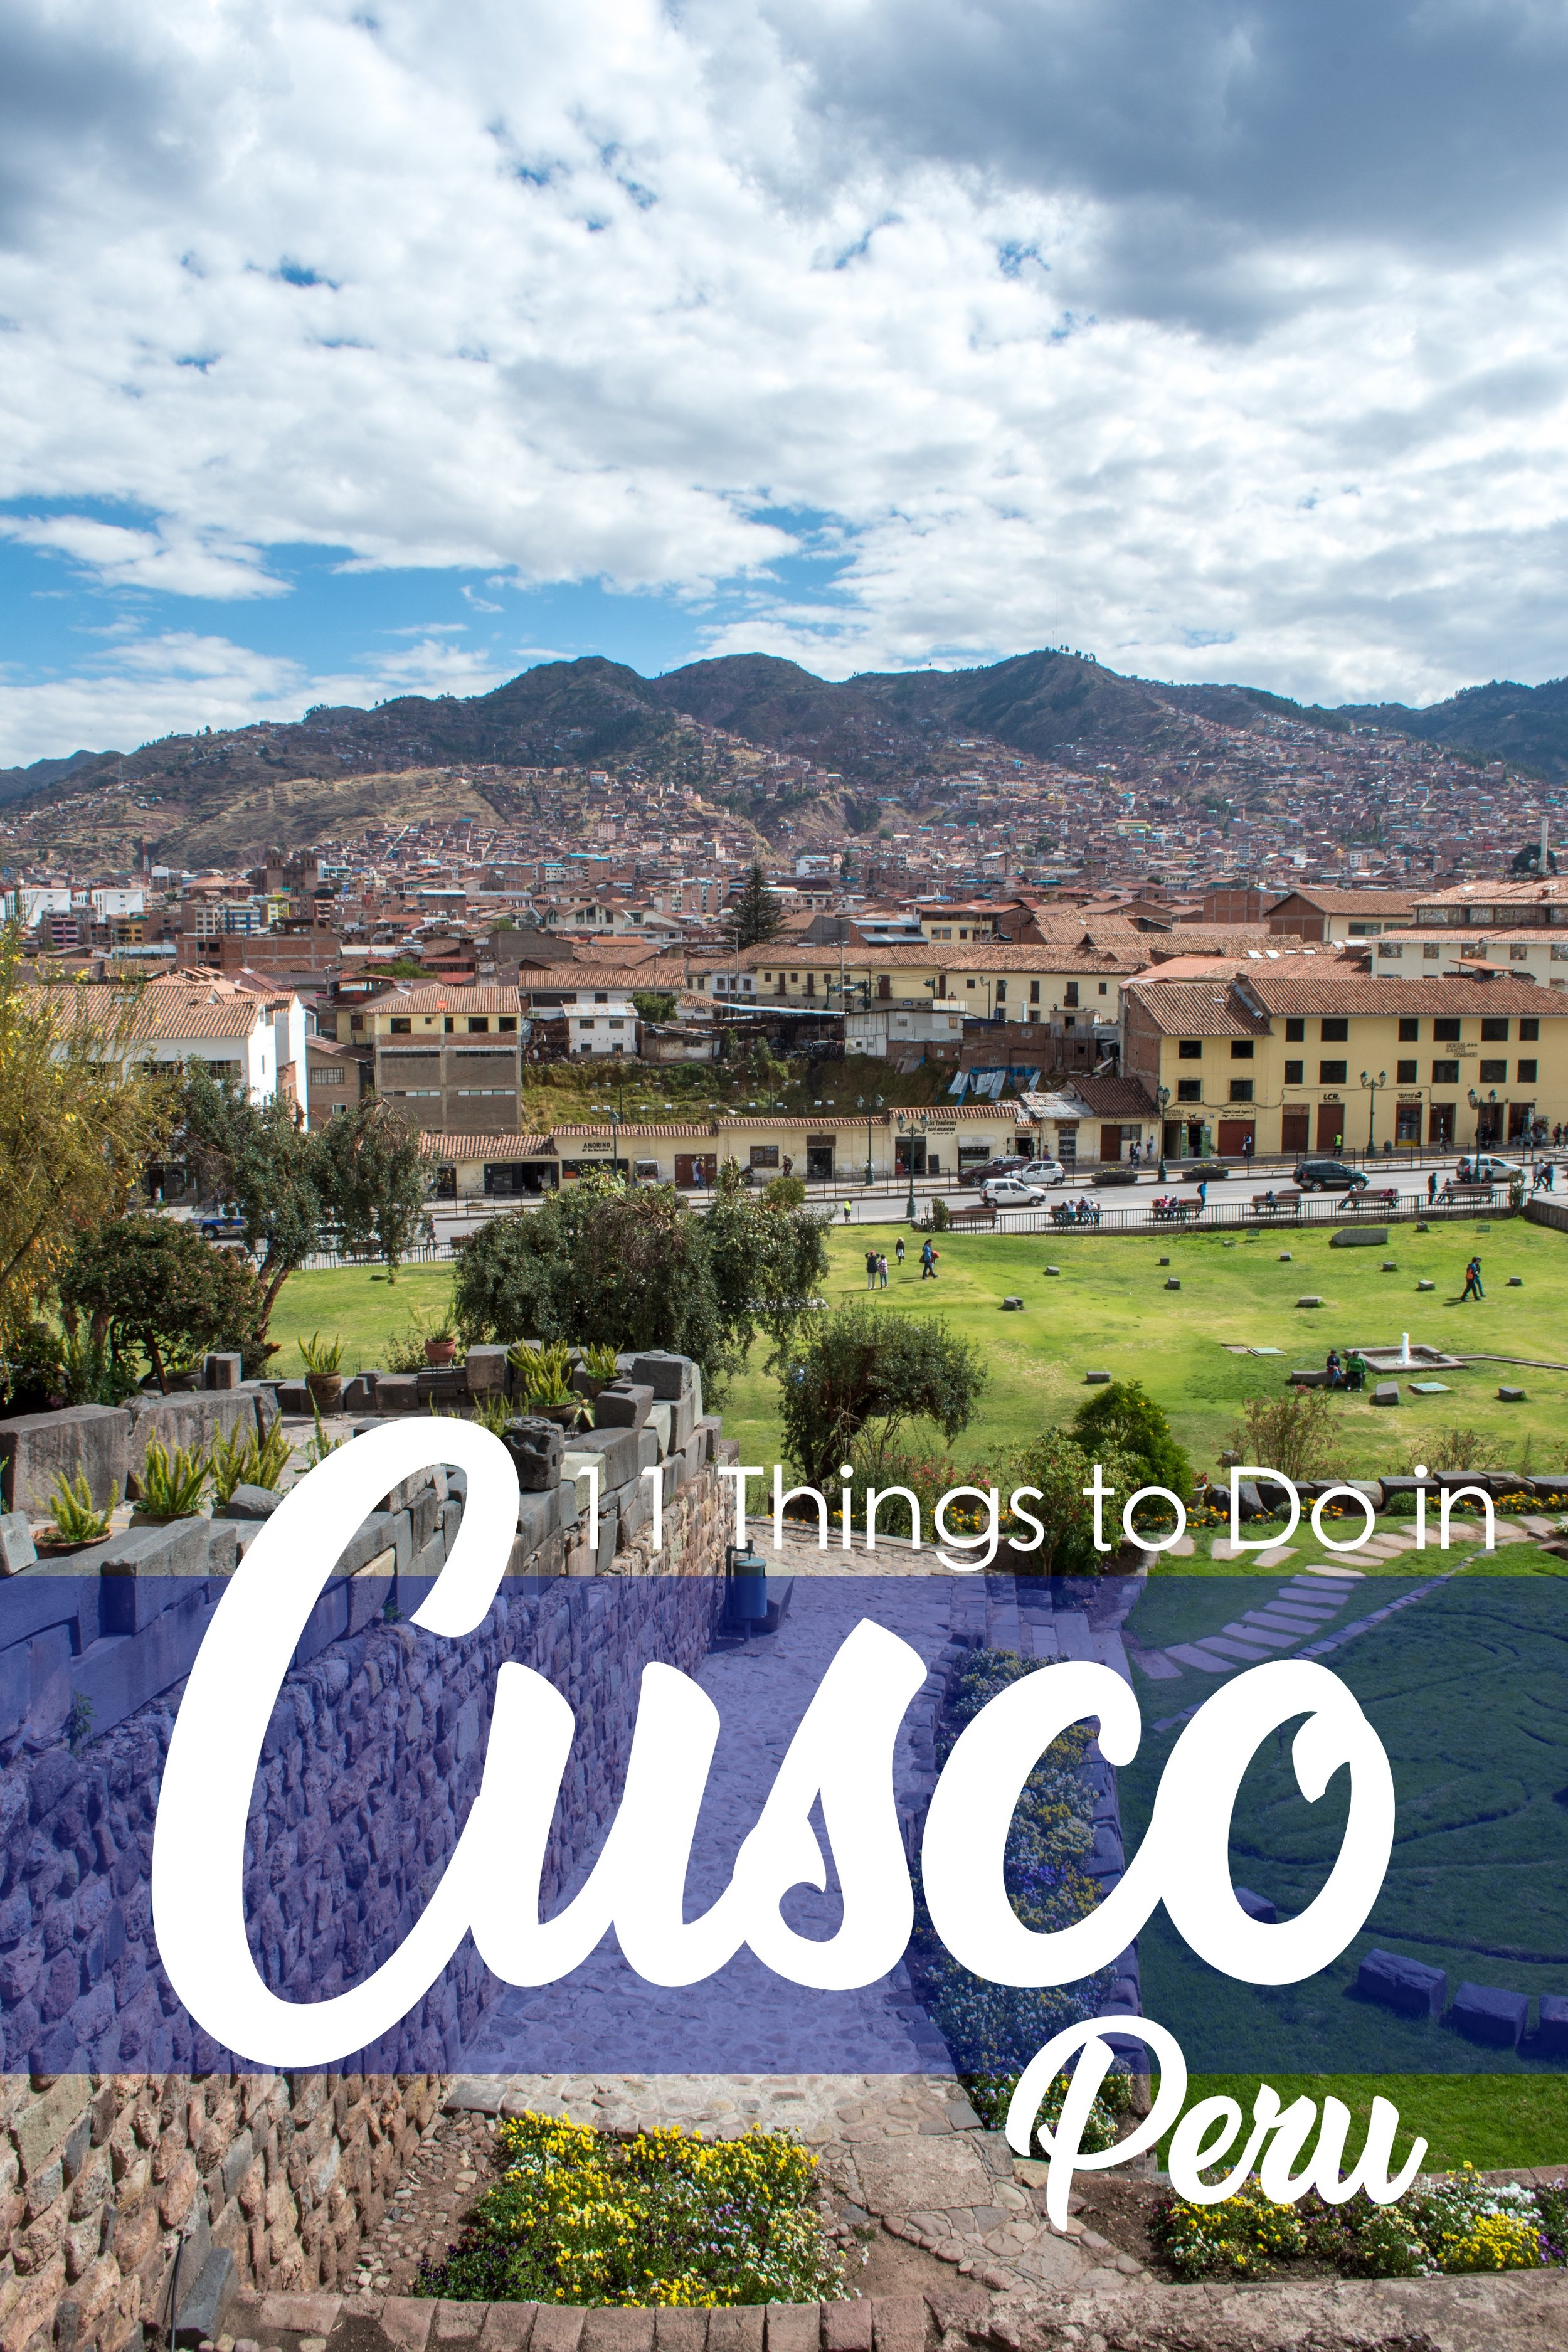 11 Things to Do in Cusco, Peru.  Cusco is more than just a gateway to Machu Picchu.  Beautiful architecture, abundant history, vibrant culture, and delicious food. #Cusco #Peru #Travel